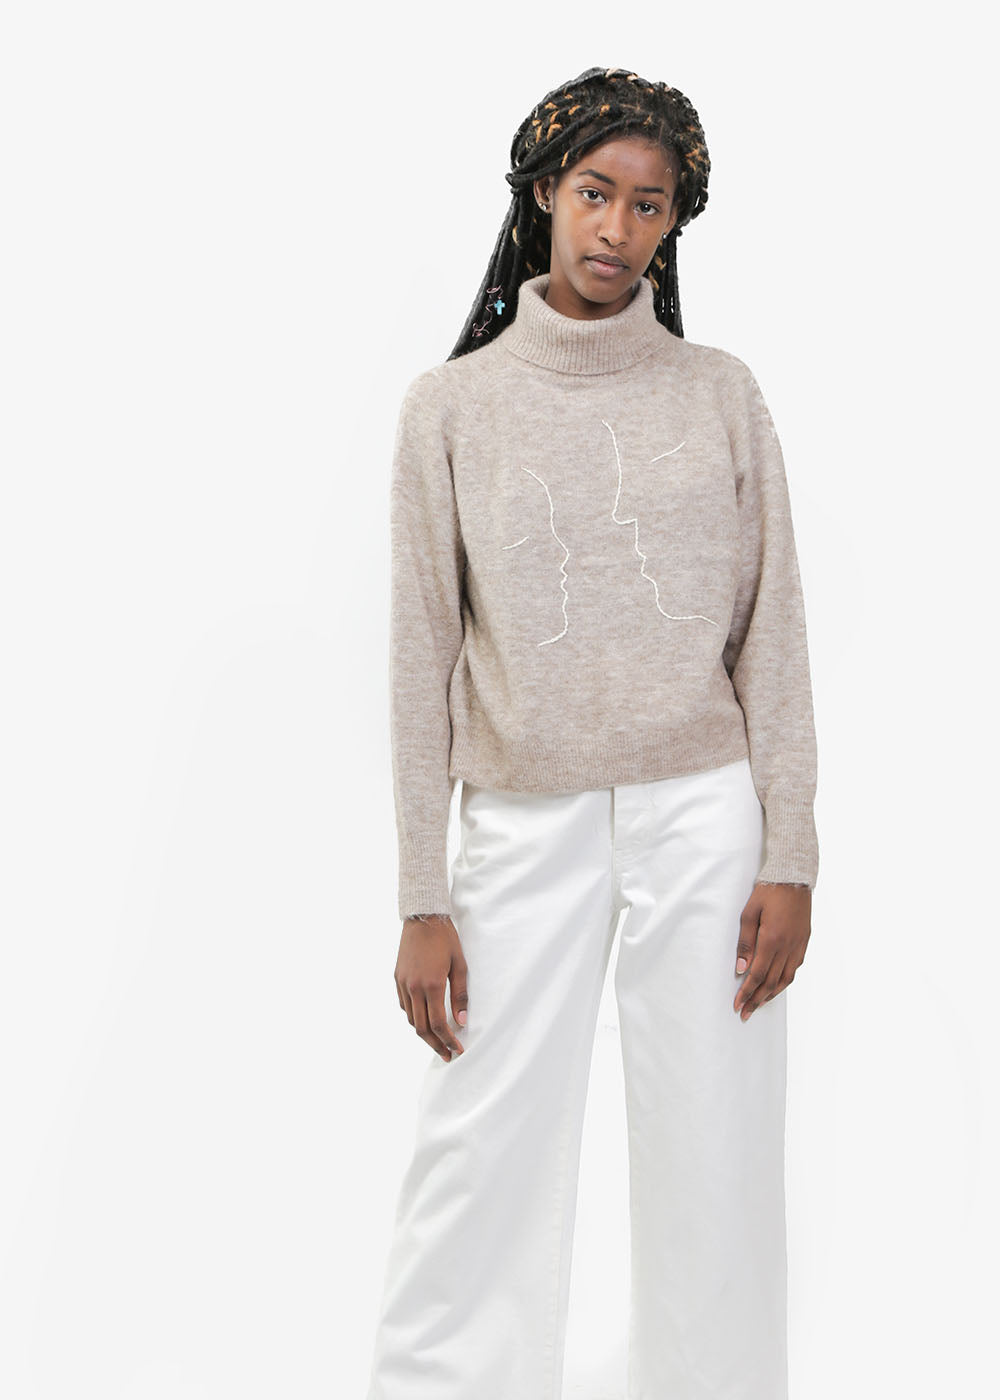 Paloma Wool Éter Turtleneck Sweater — New Classics Studios